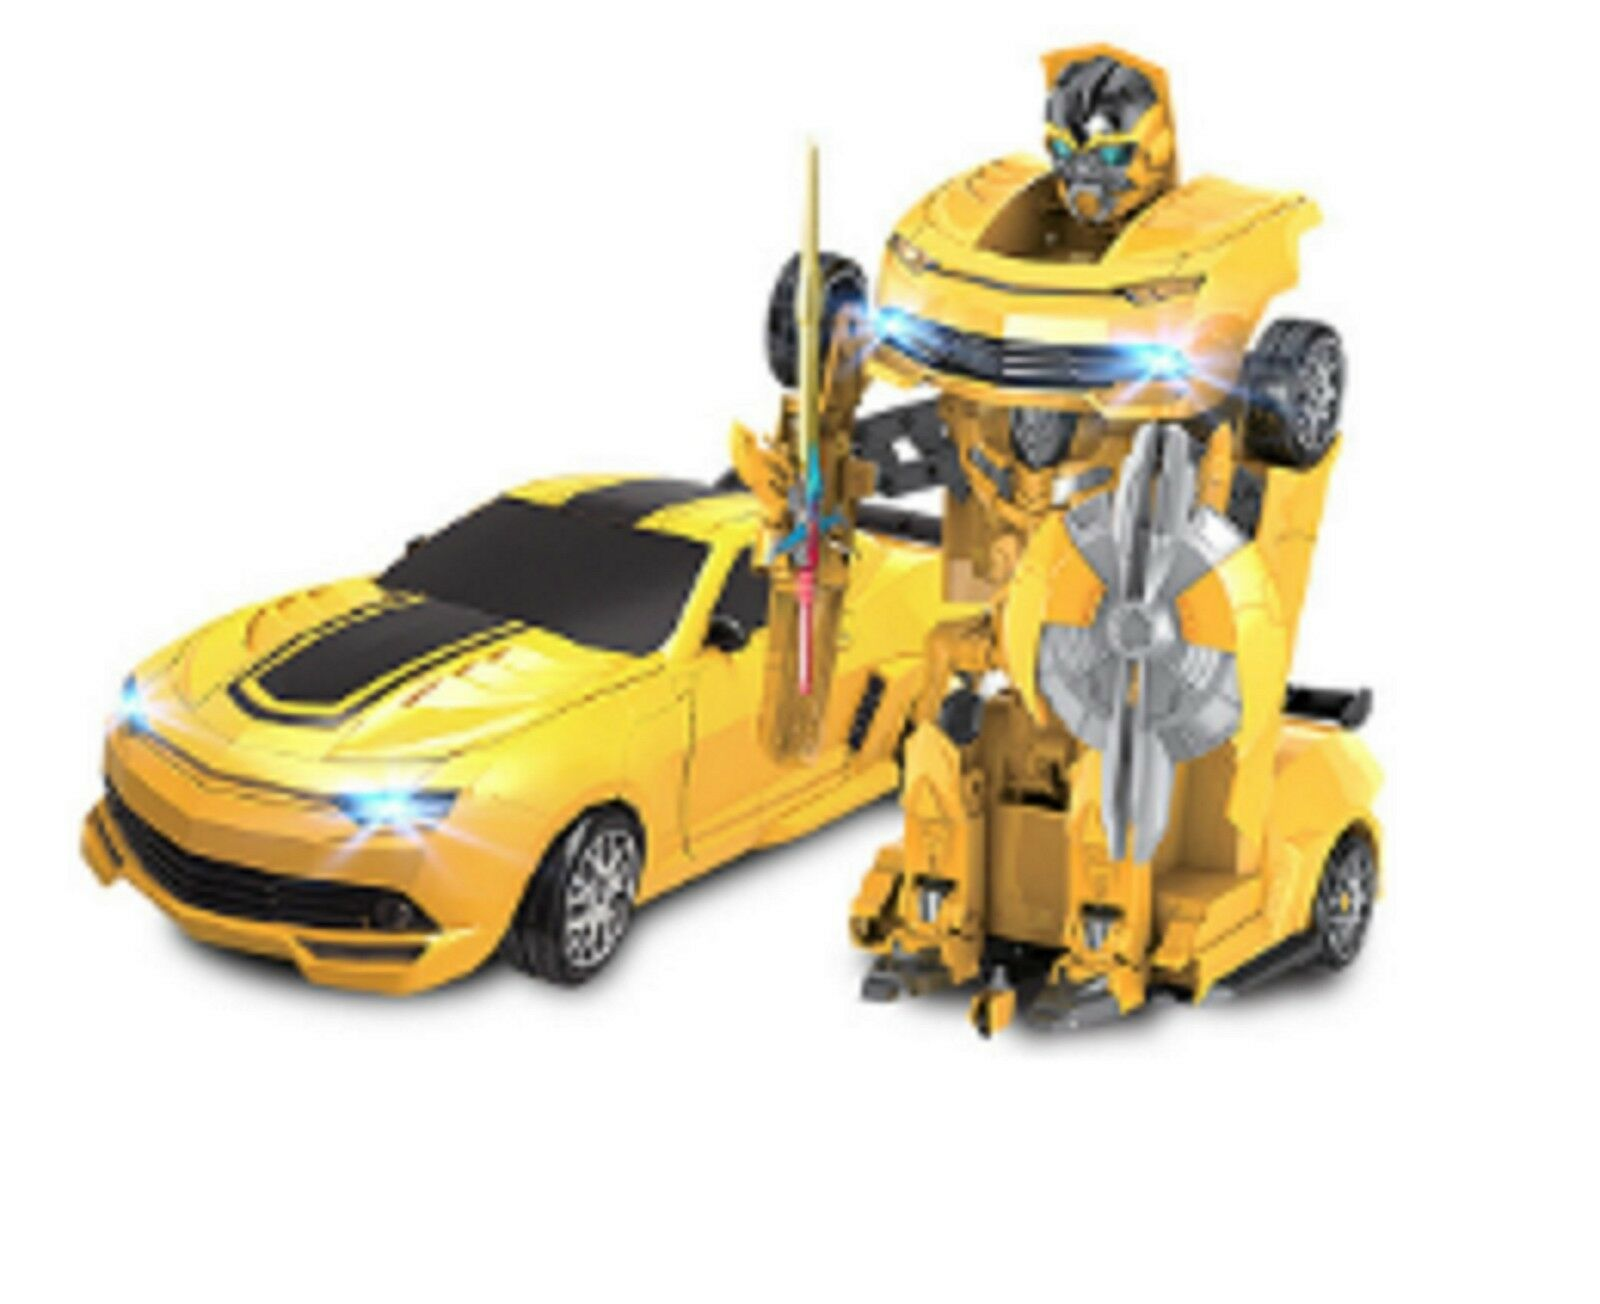 MZ Transformers 2313X RC IR Warrior Bumblebee Ages 8 Remote Control Robot auto